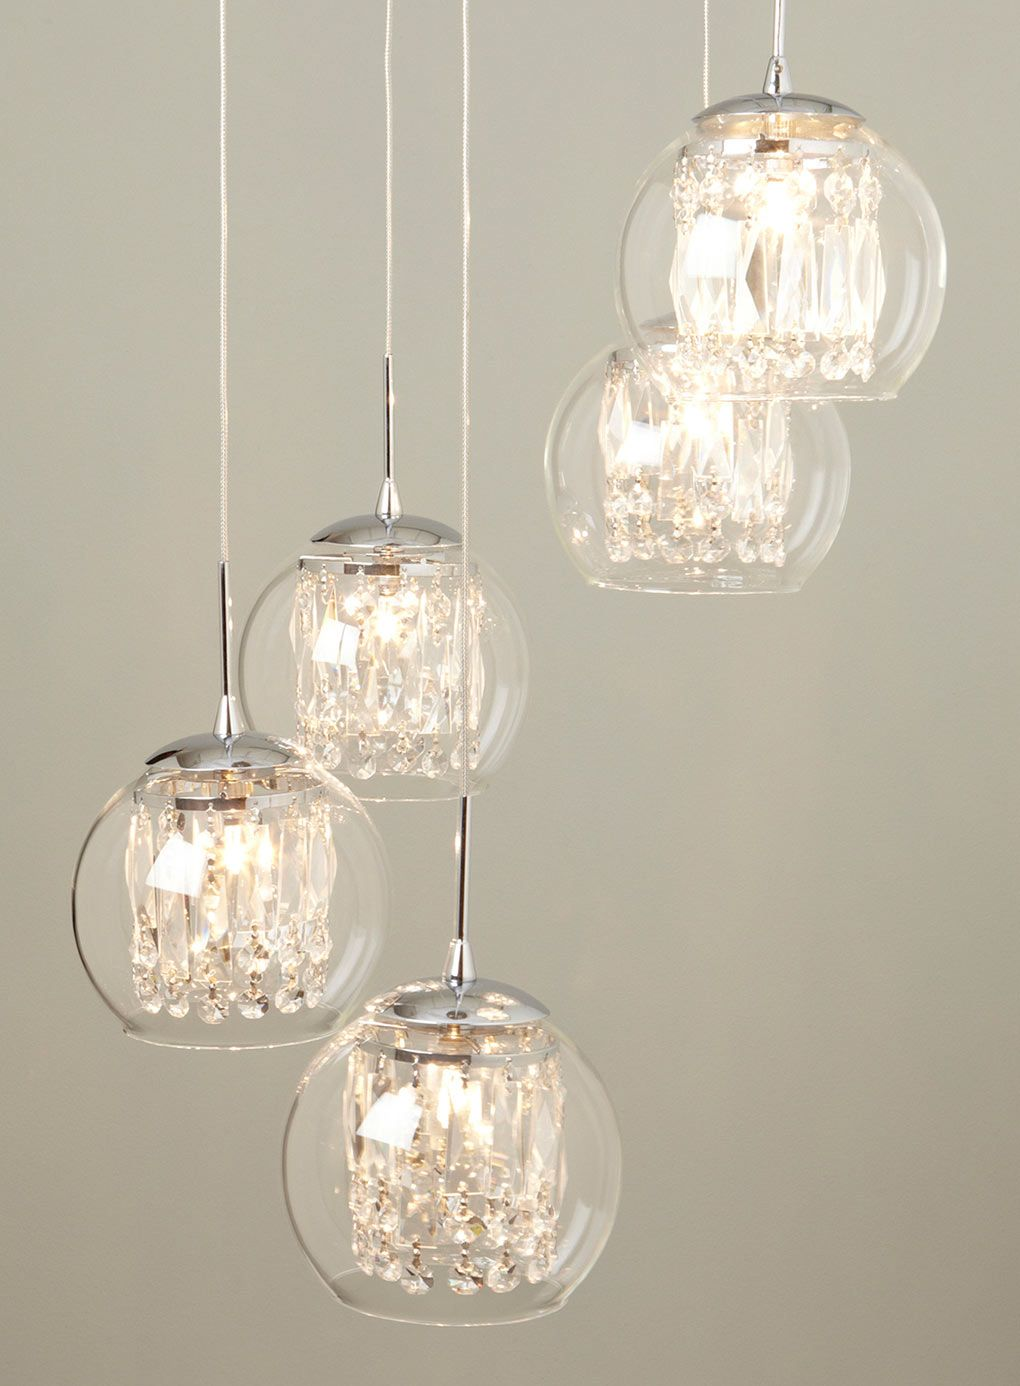 Glass Amp Crystal Spiral Pendant Chandelier